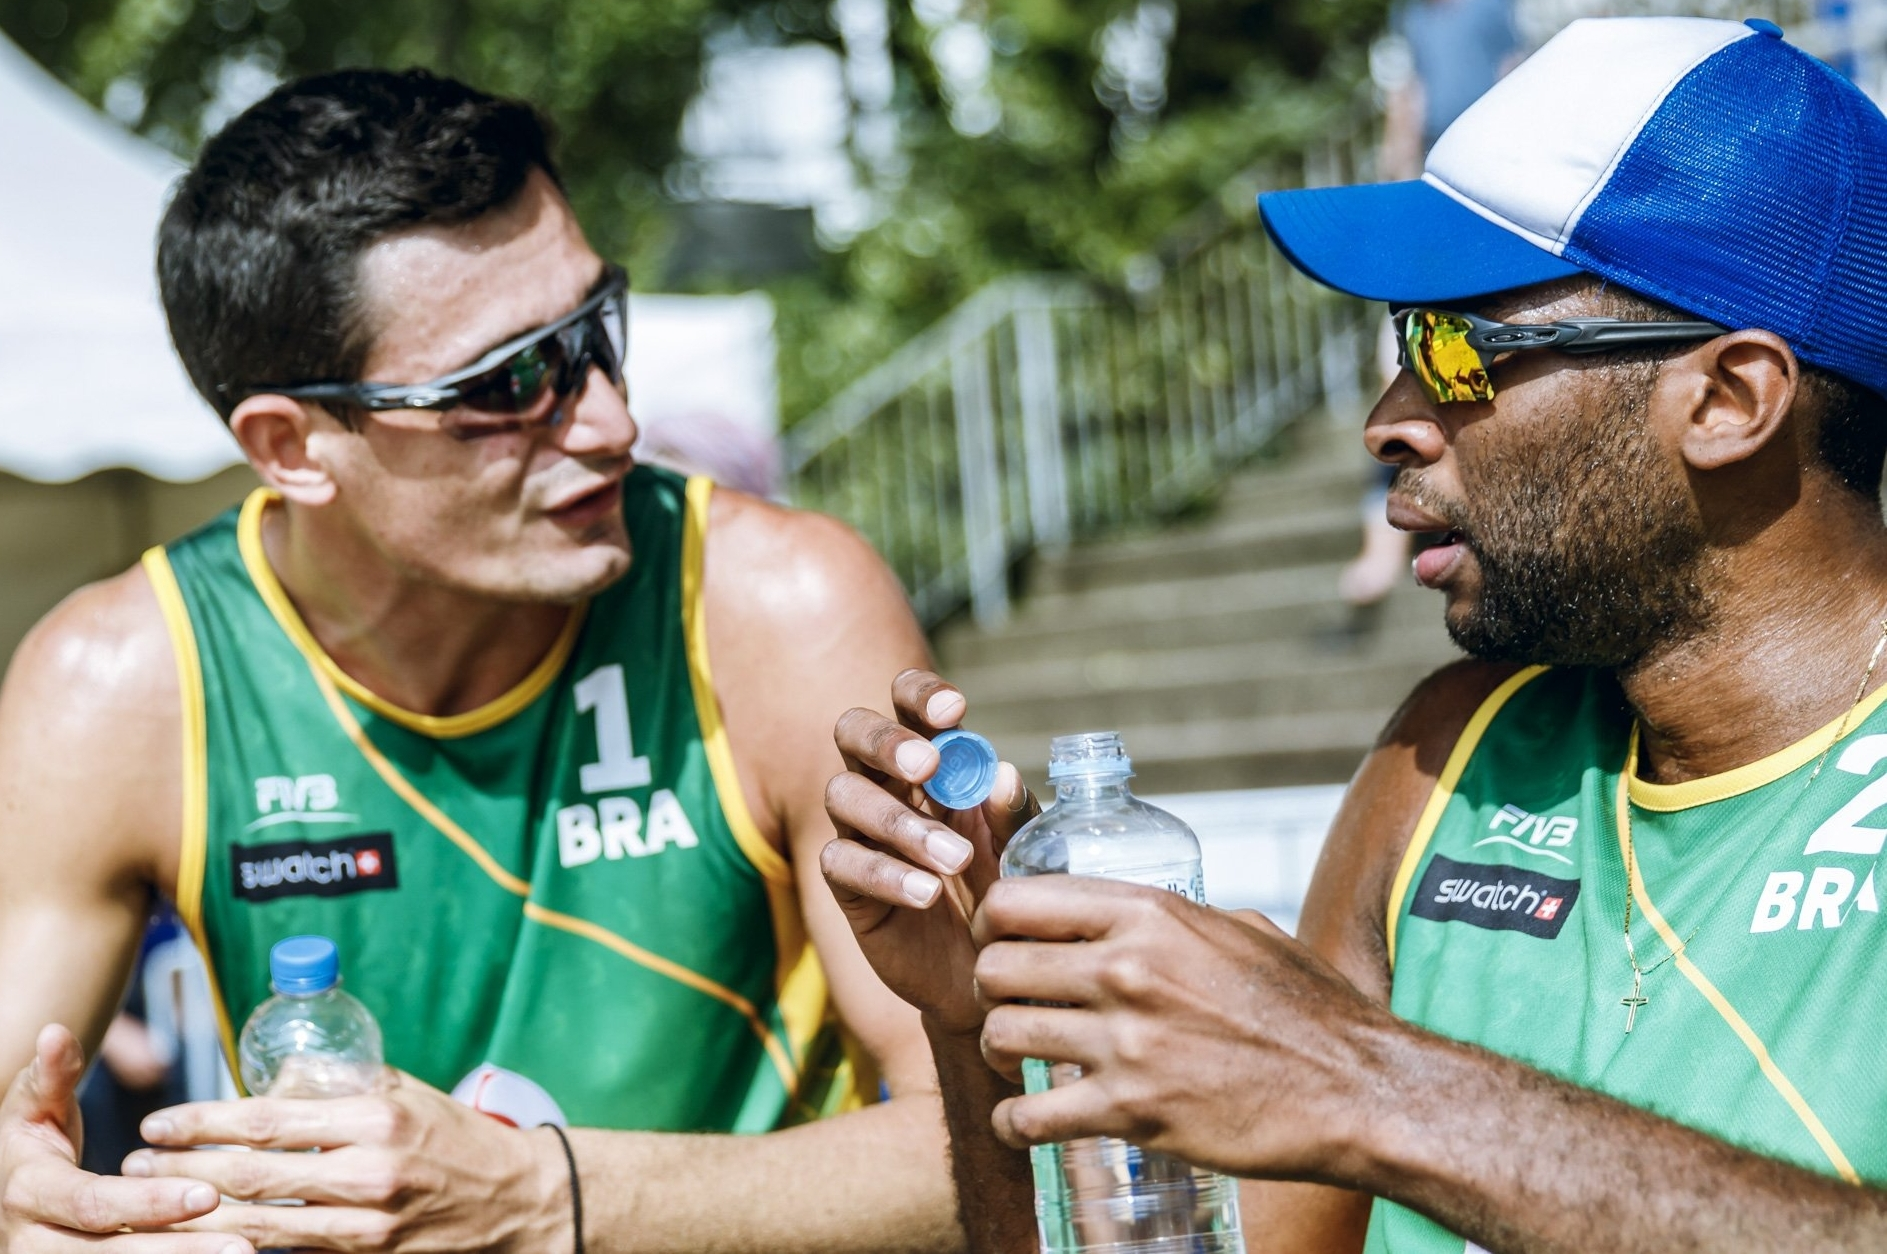 The Brazilian duo talk tactics during their straight sets win